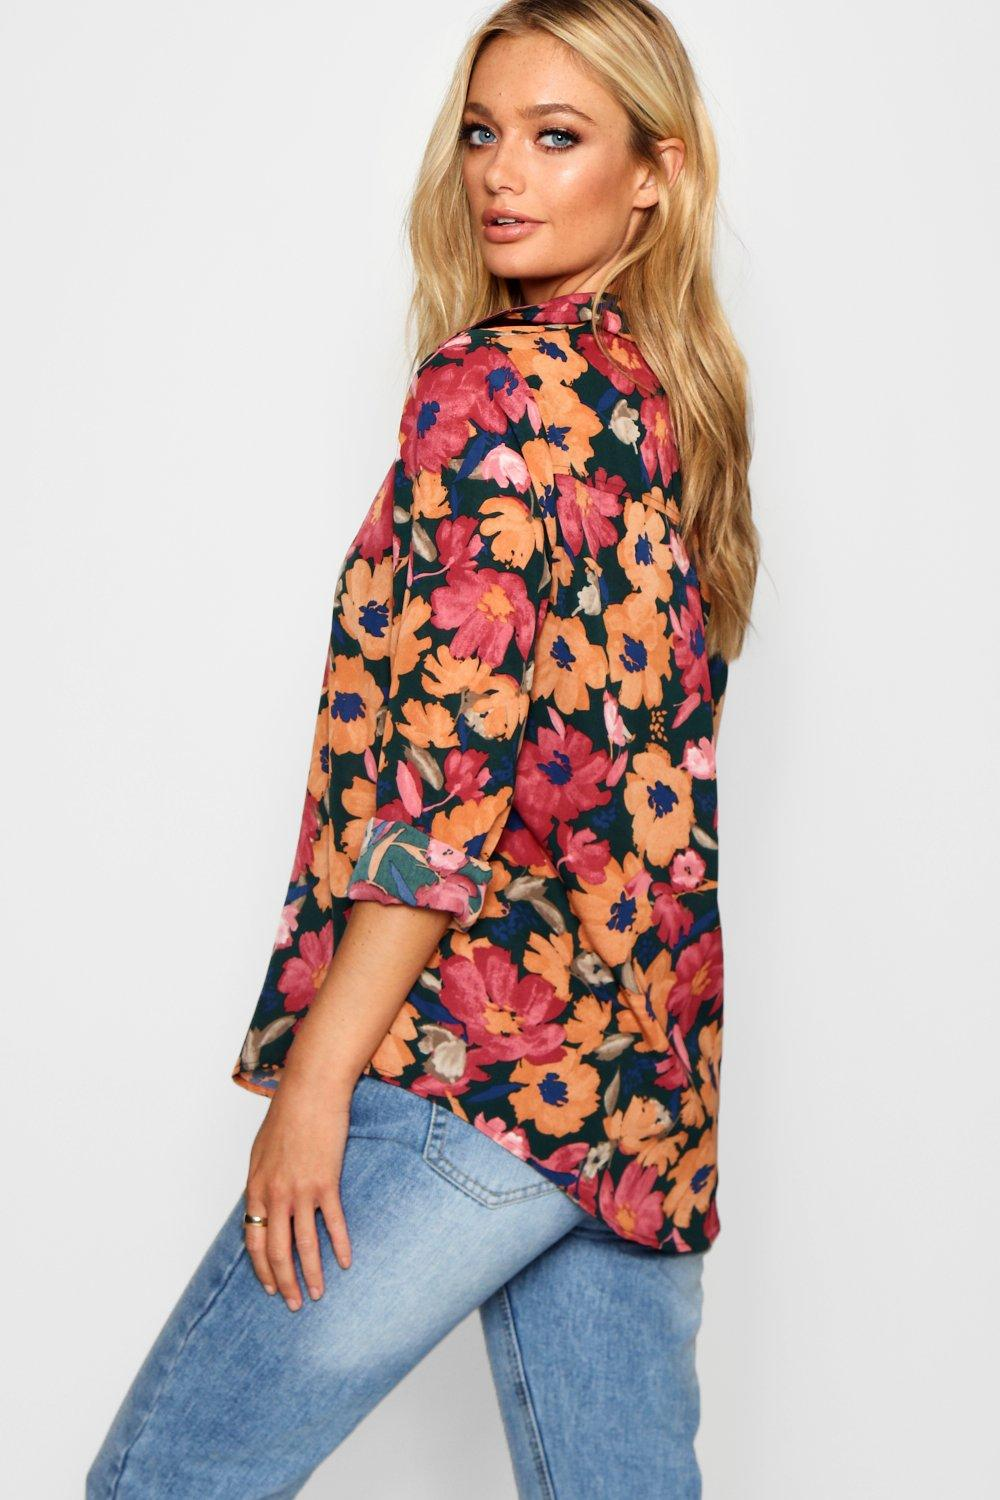 Shirt Floral Print Oversized orange Woven YwUnAp6